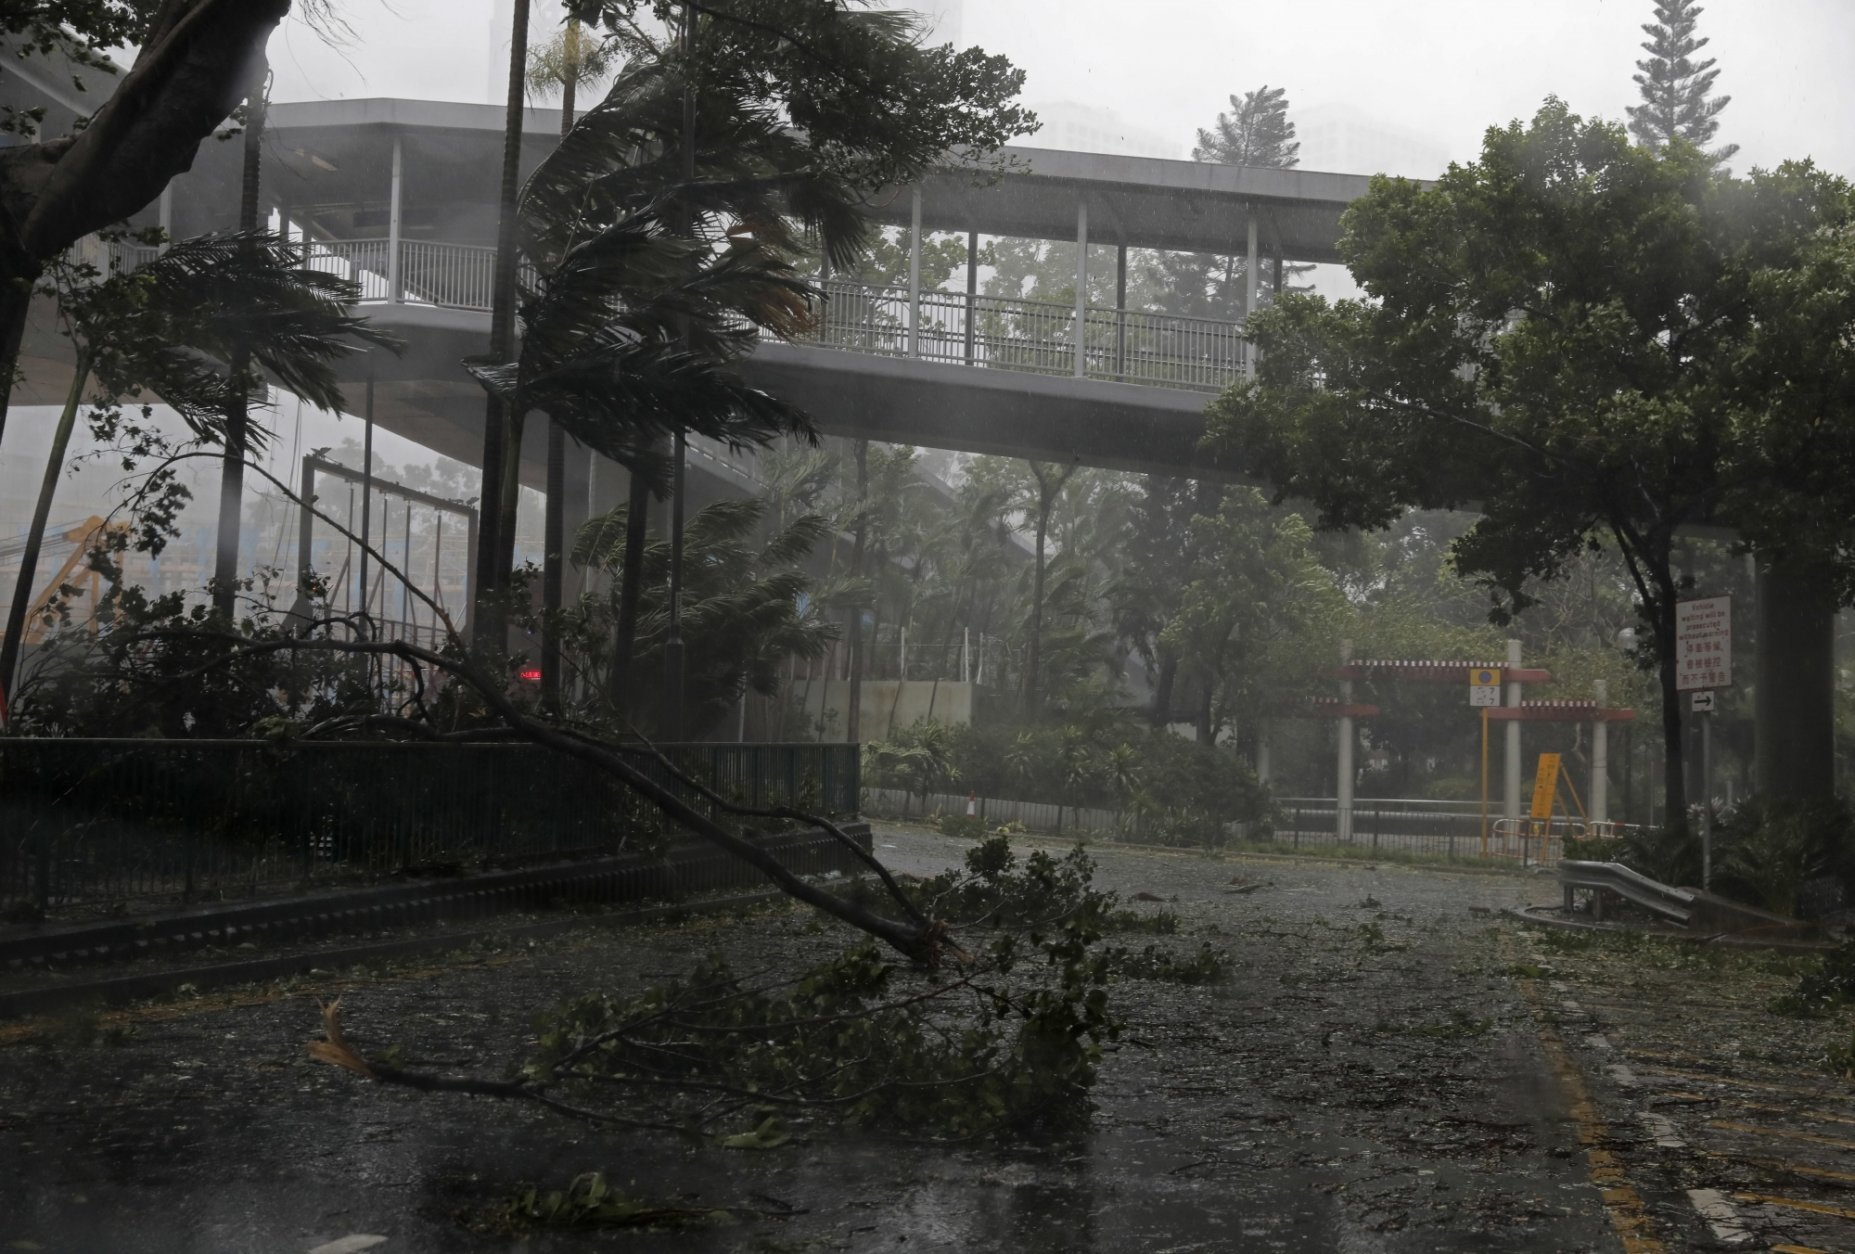 A fallen tree caused by typhoon Mangkhut lies at a street in Hong Kong, Sunday, Sept. 16, 2018. Hong Kong and southern China hunkered down as strong winds and heavy rain from Typhoon Mangkhut lash the densely populated coast. The biggest storm of the year left at least 28 dead from landslides and drownings as it sliced through the northern Philippines. (AP Photo/Vincent Yu)